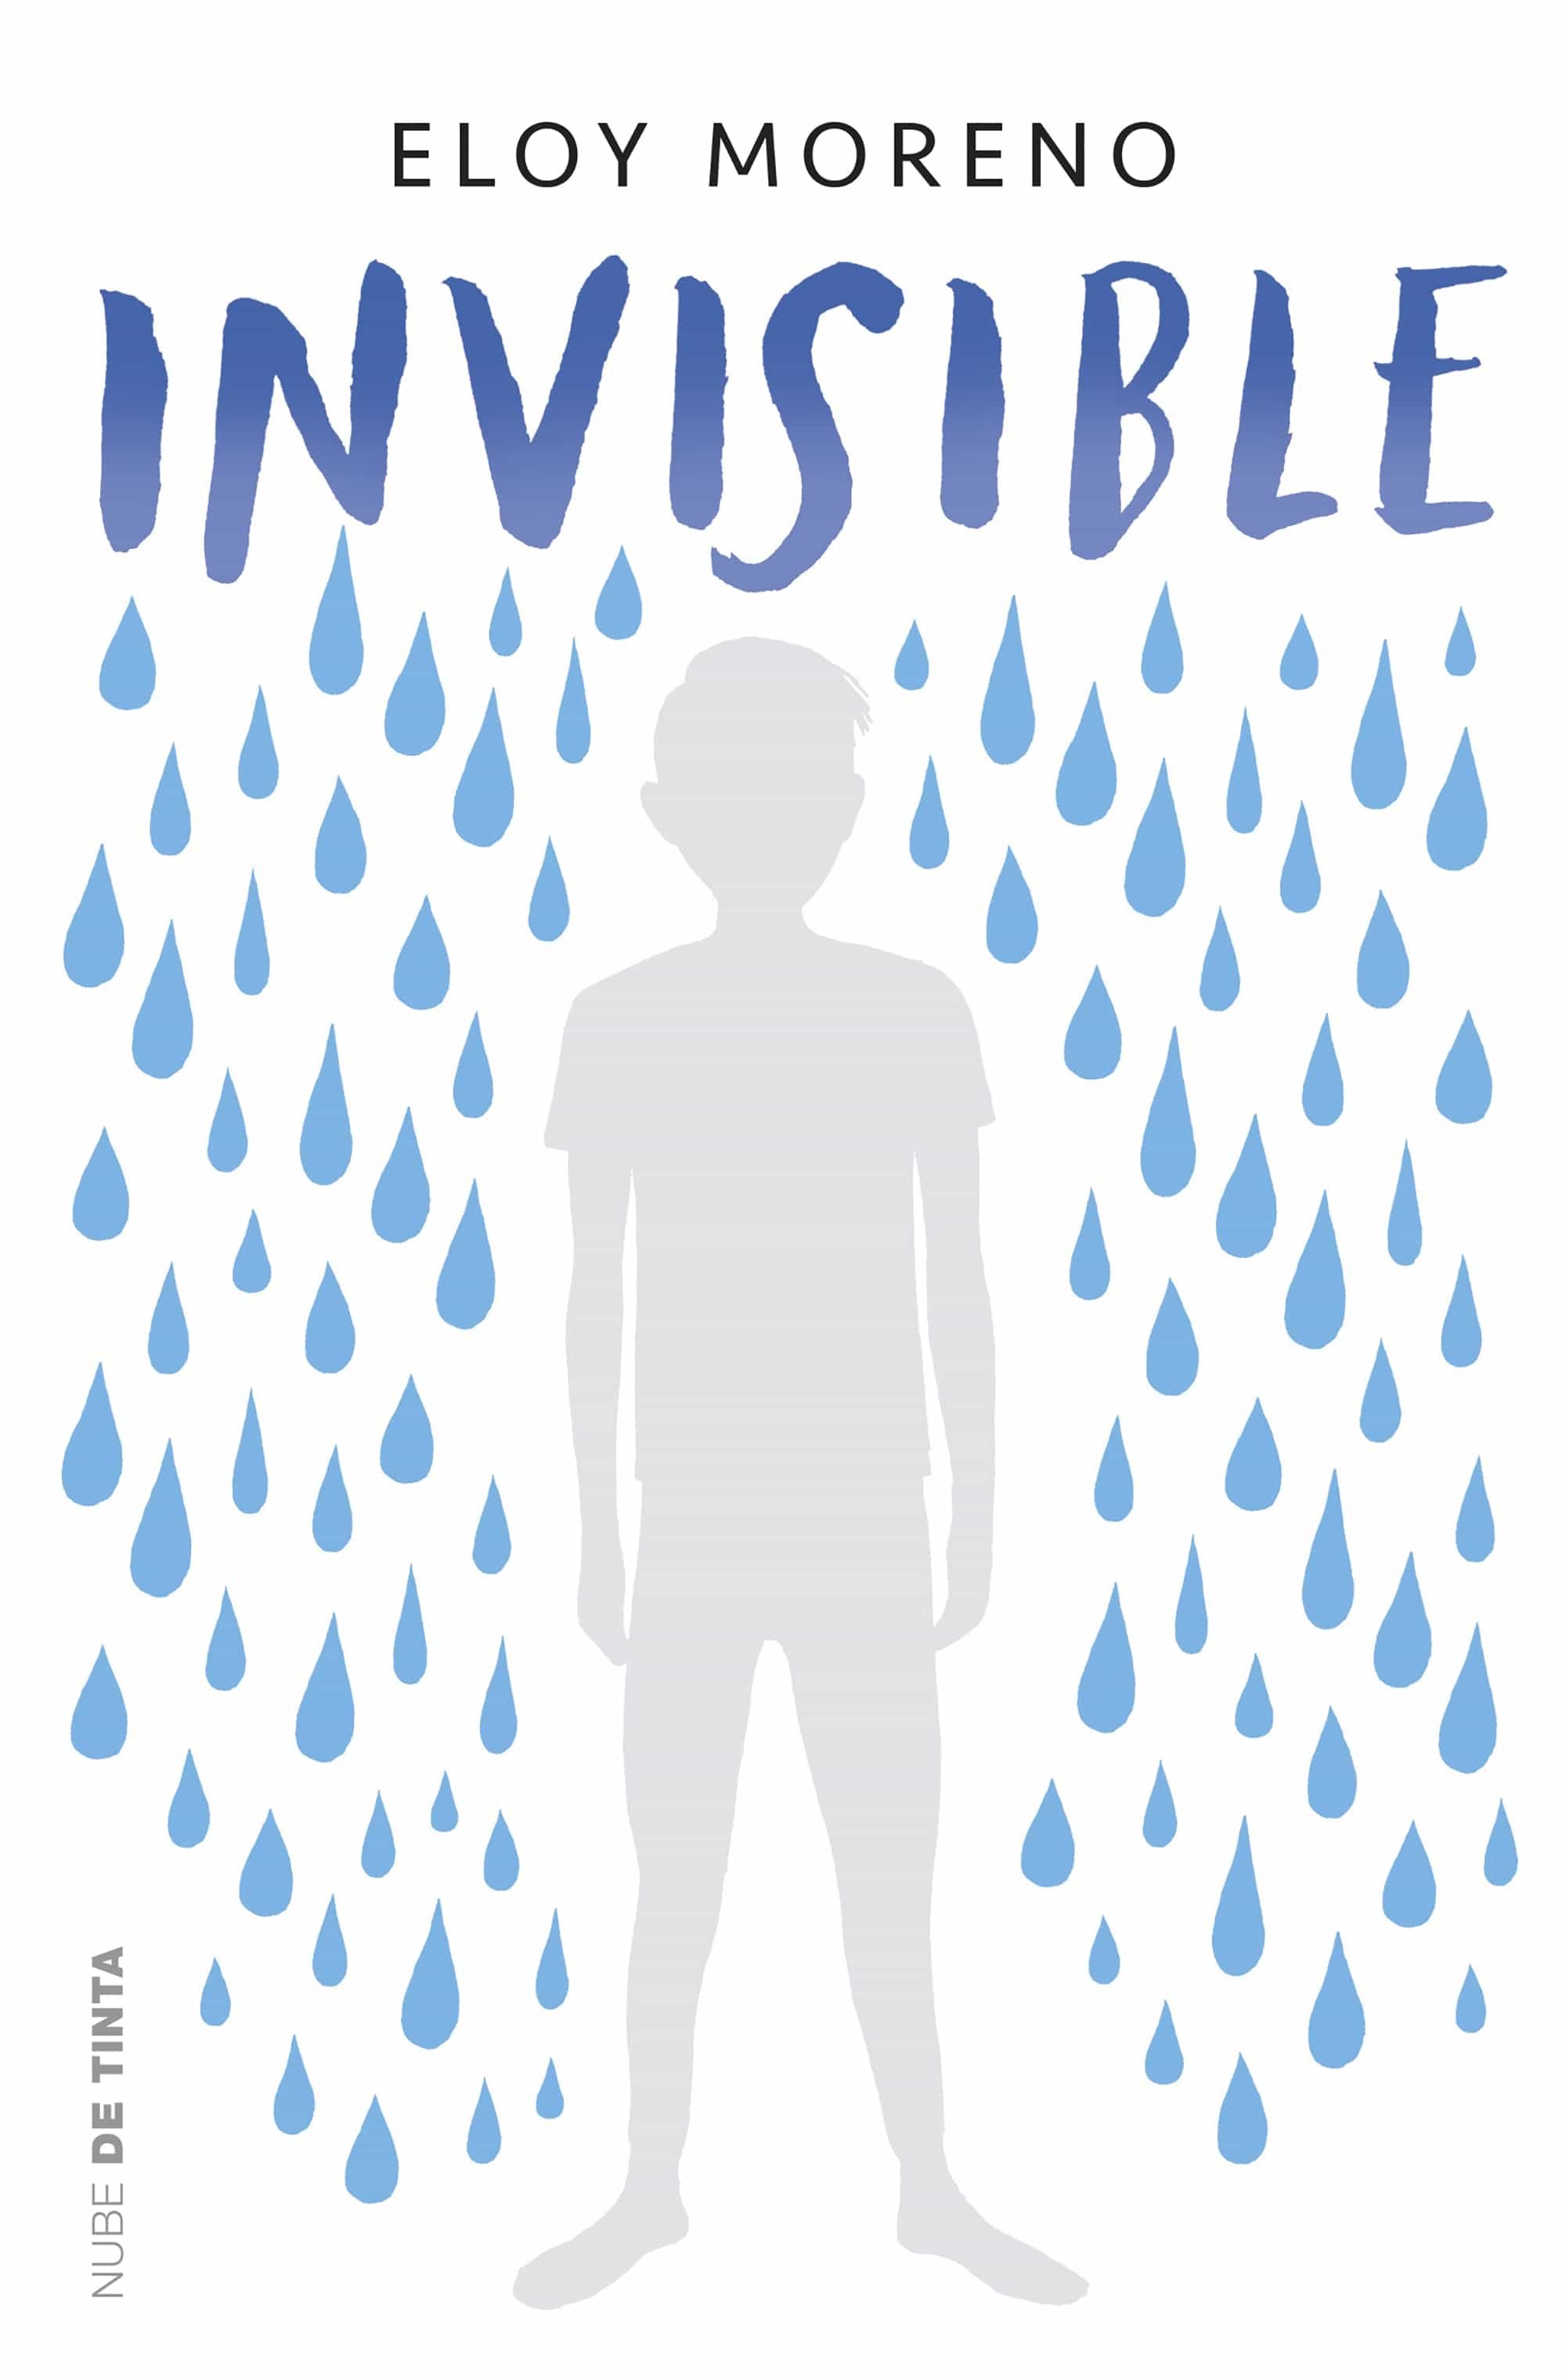 invisible-eloy moreno-9788416588435